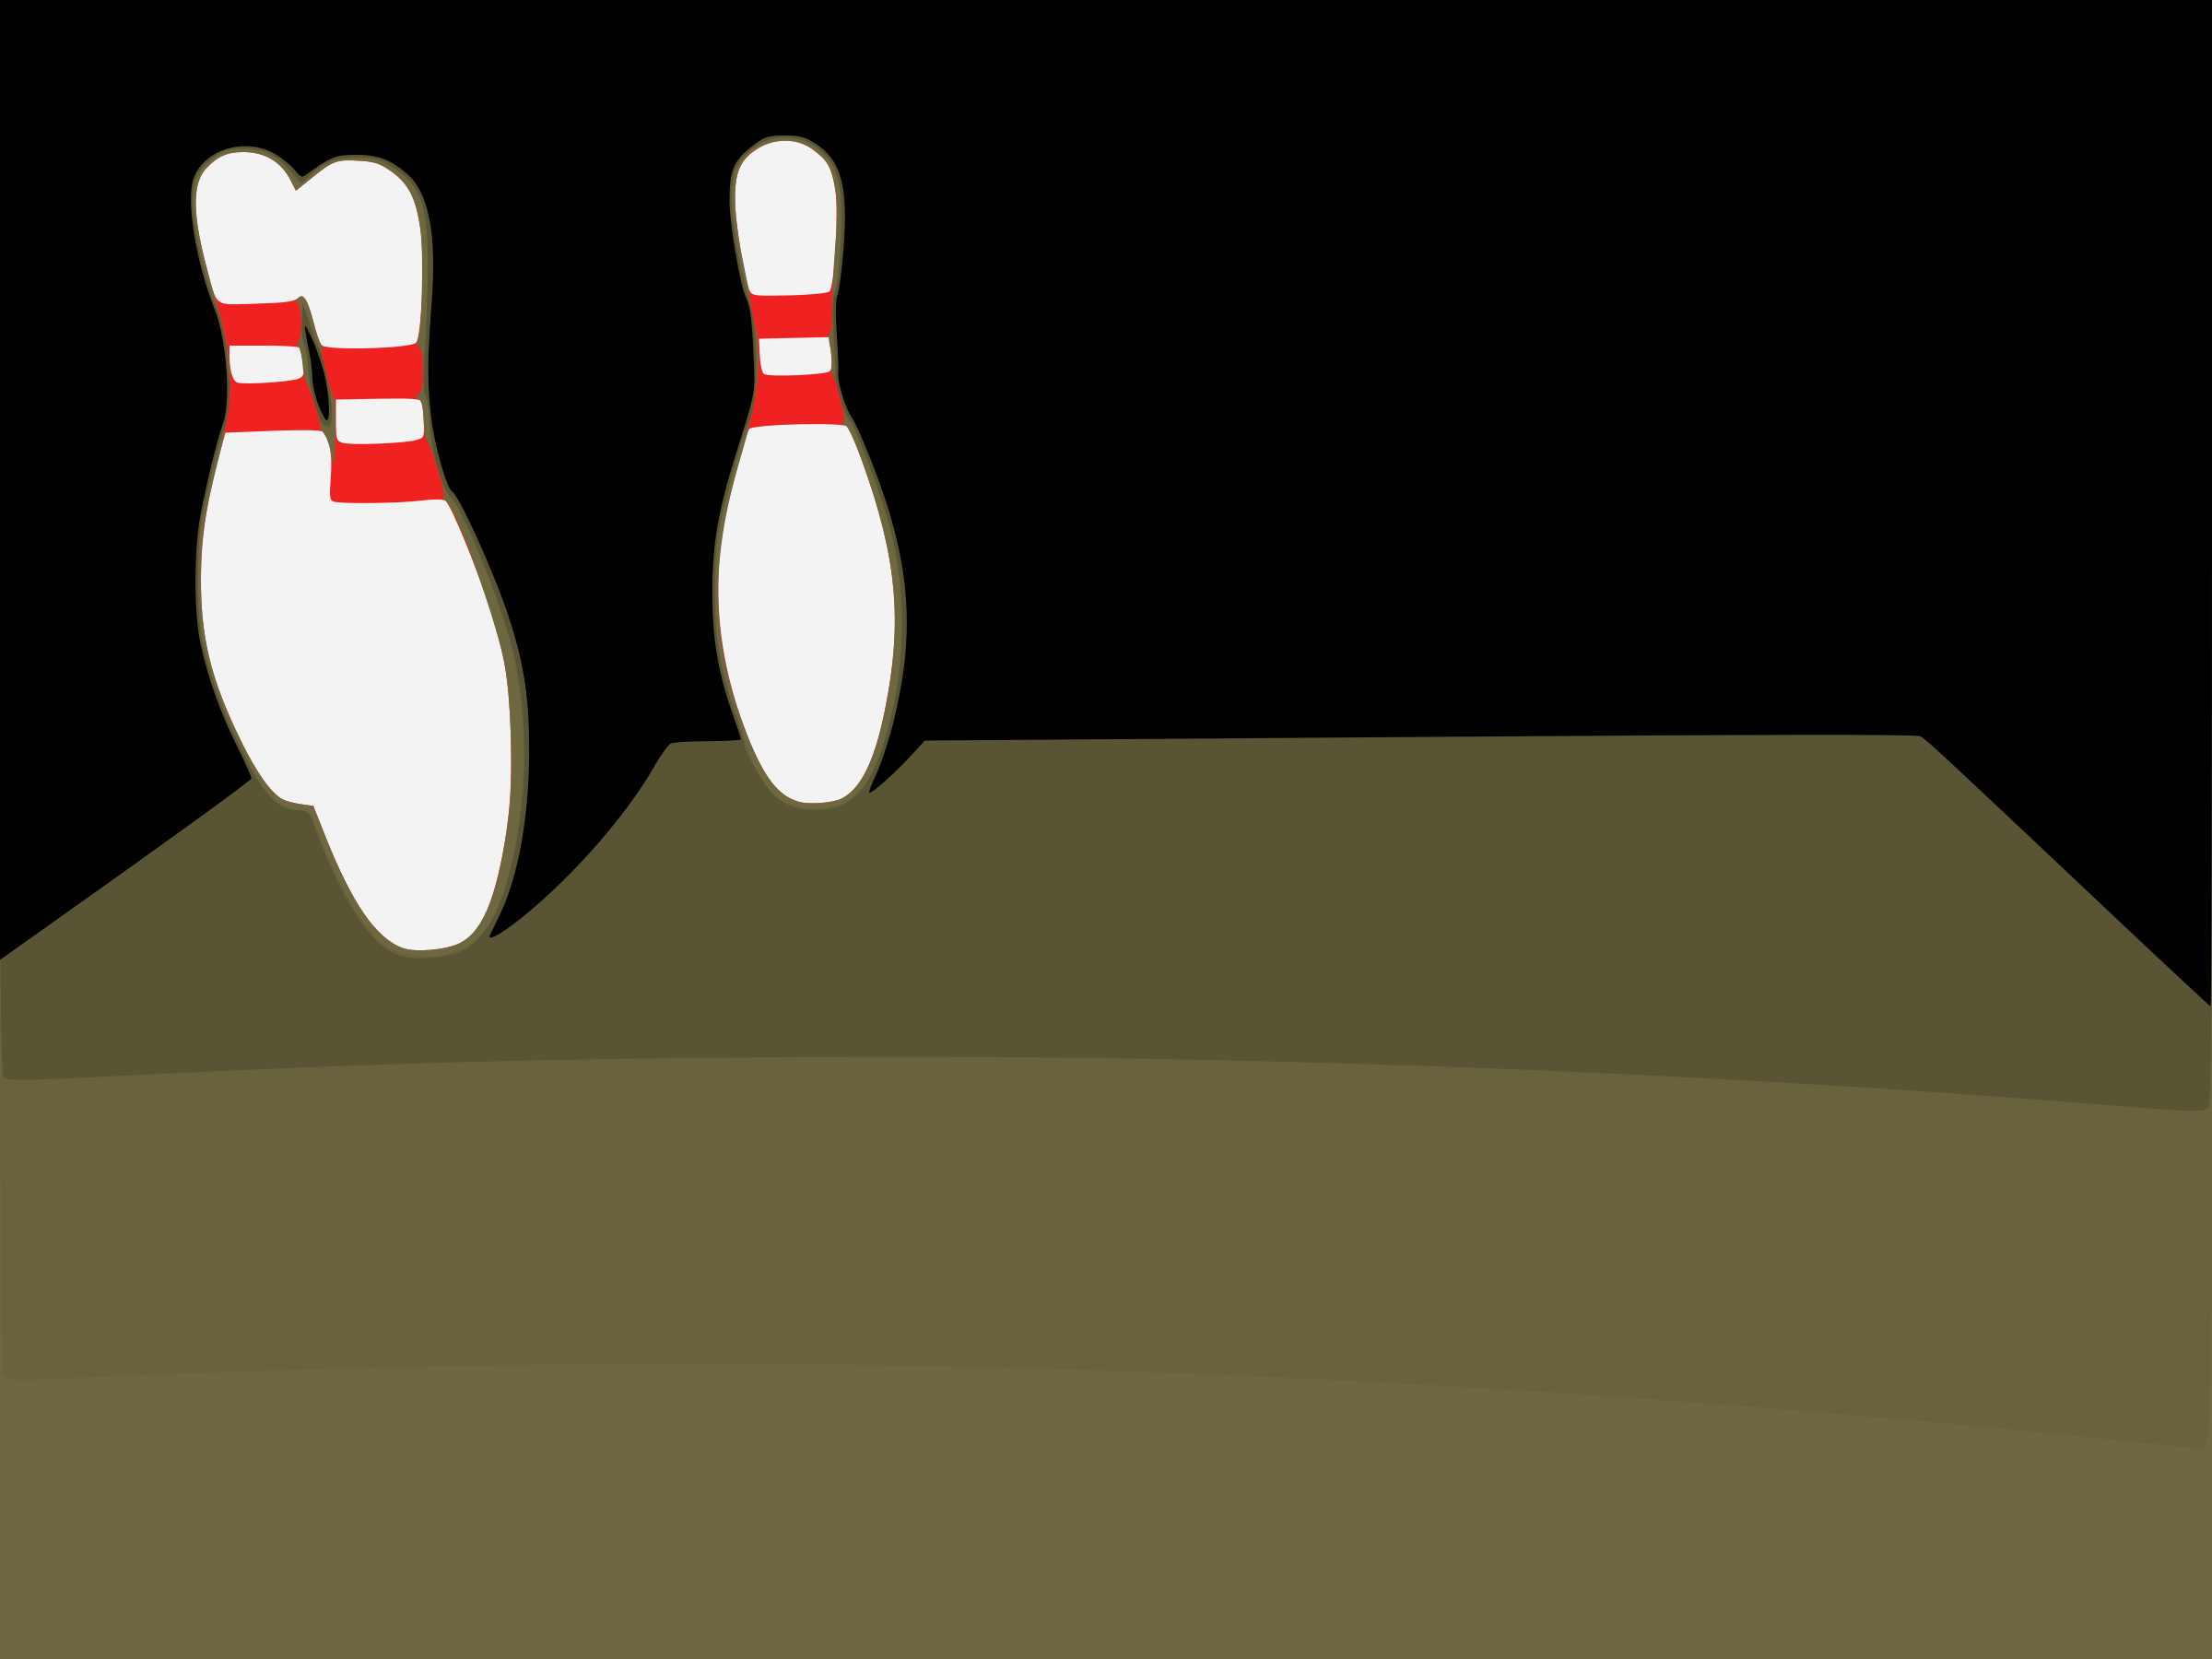 Bowling 4-7-8 Leave by mazeo